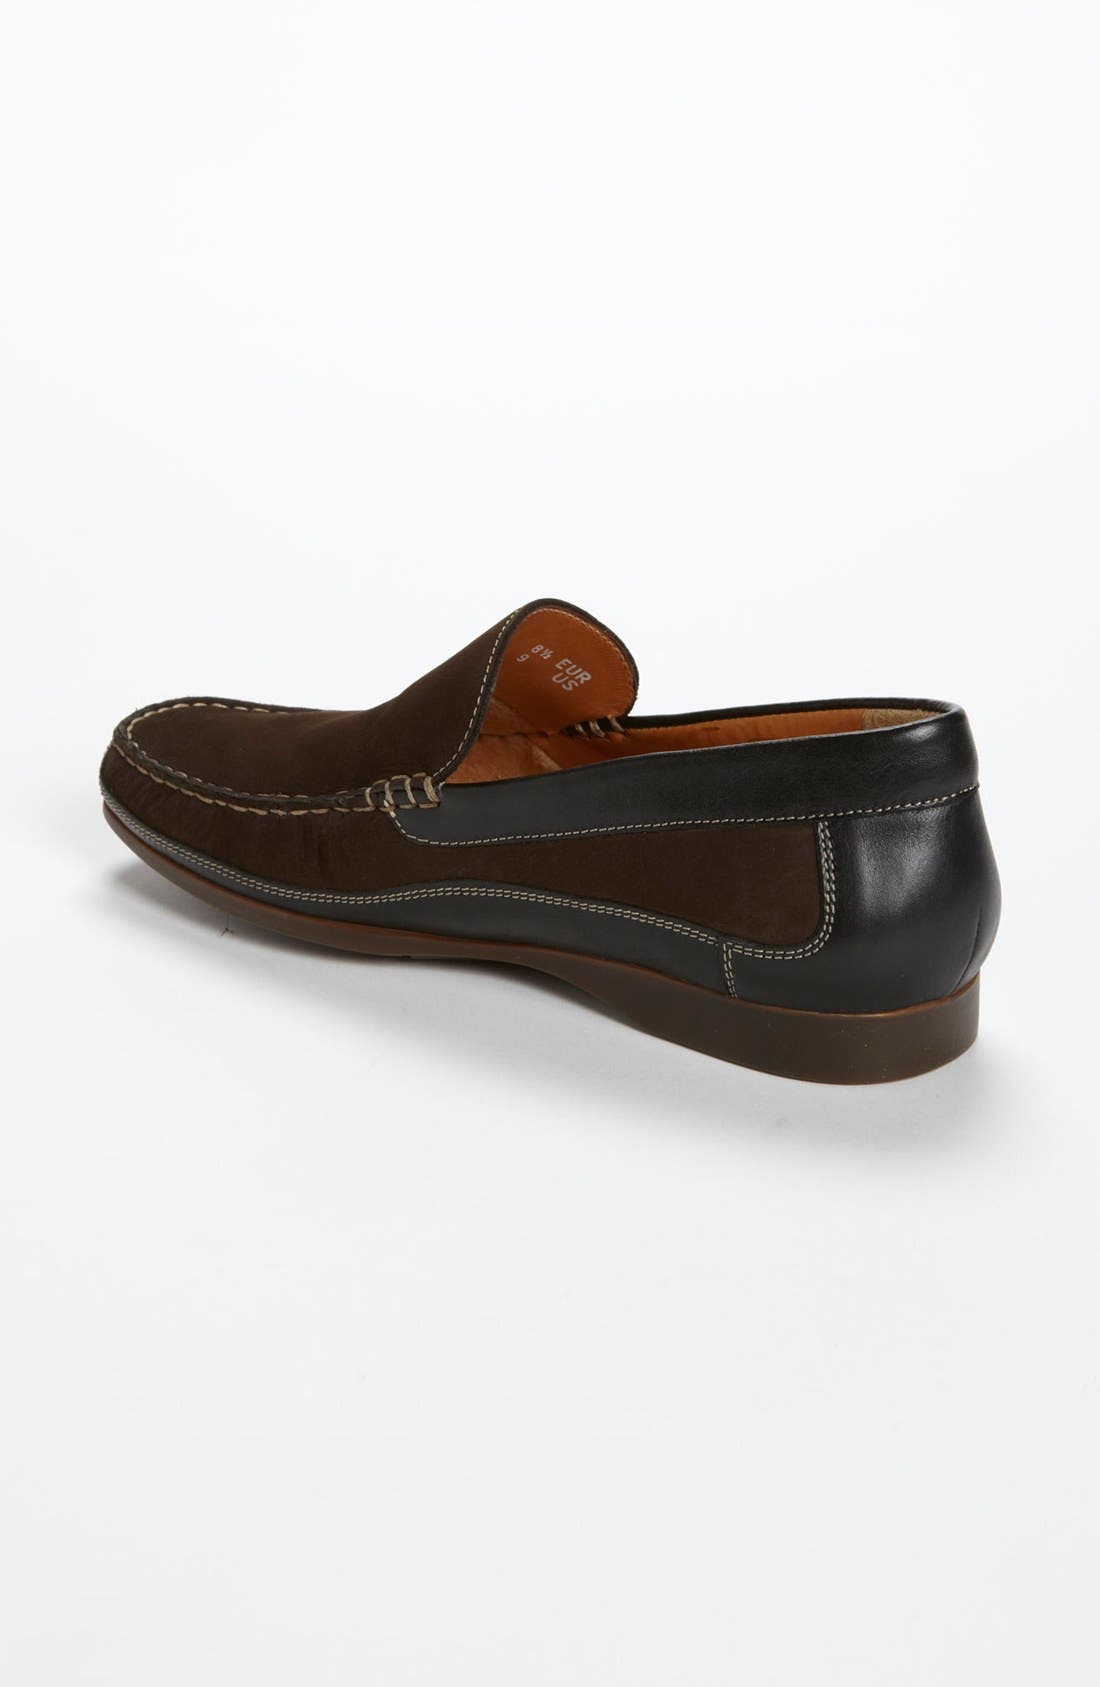 'Baduard' Loafer,                             Alternate thumbnail 2, color,                             Brown Nubuck/ Brown Suede